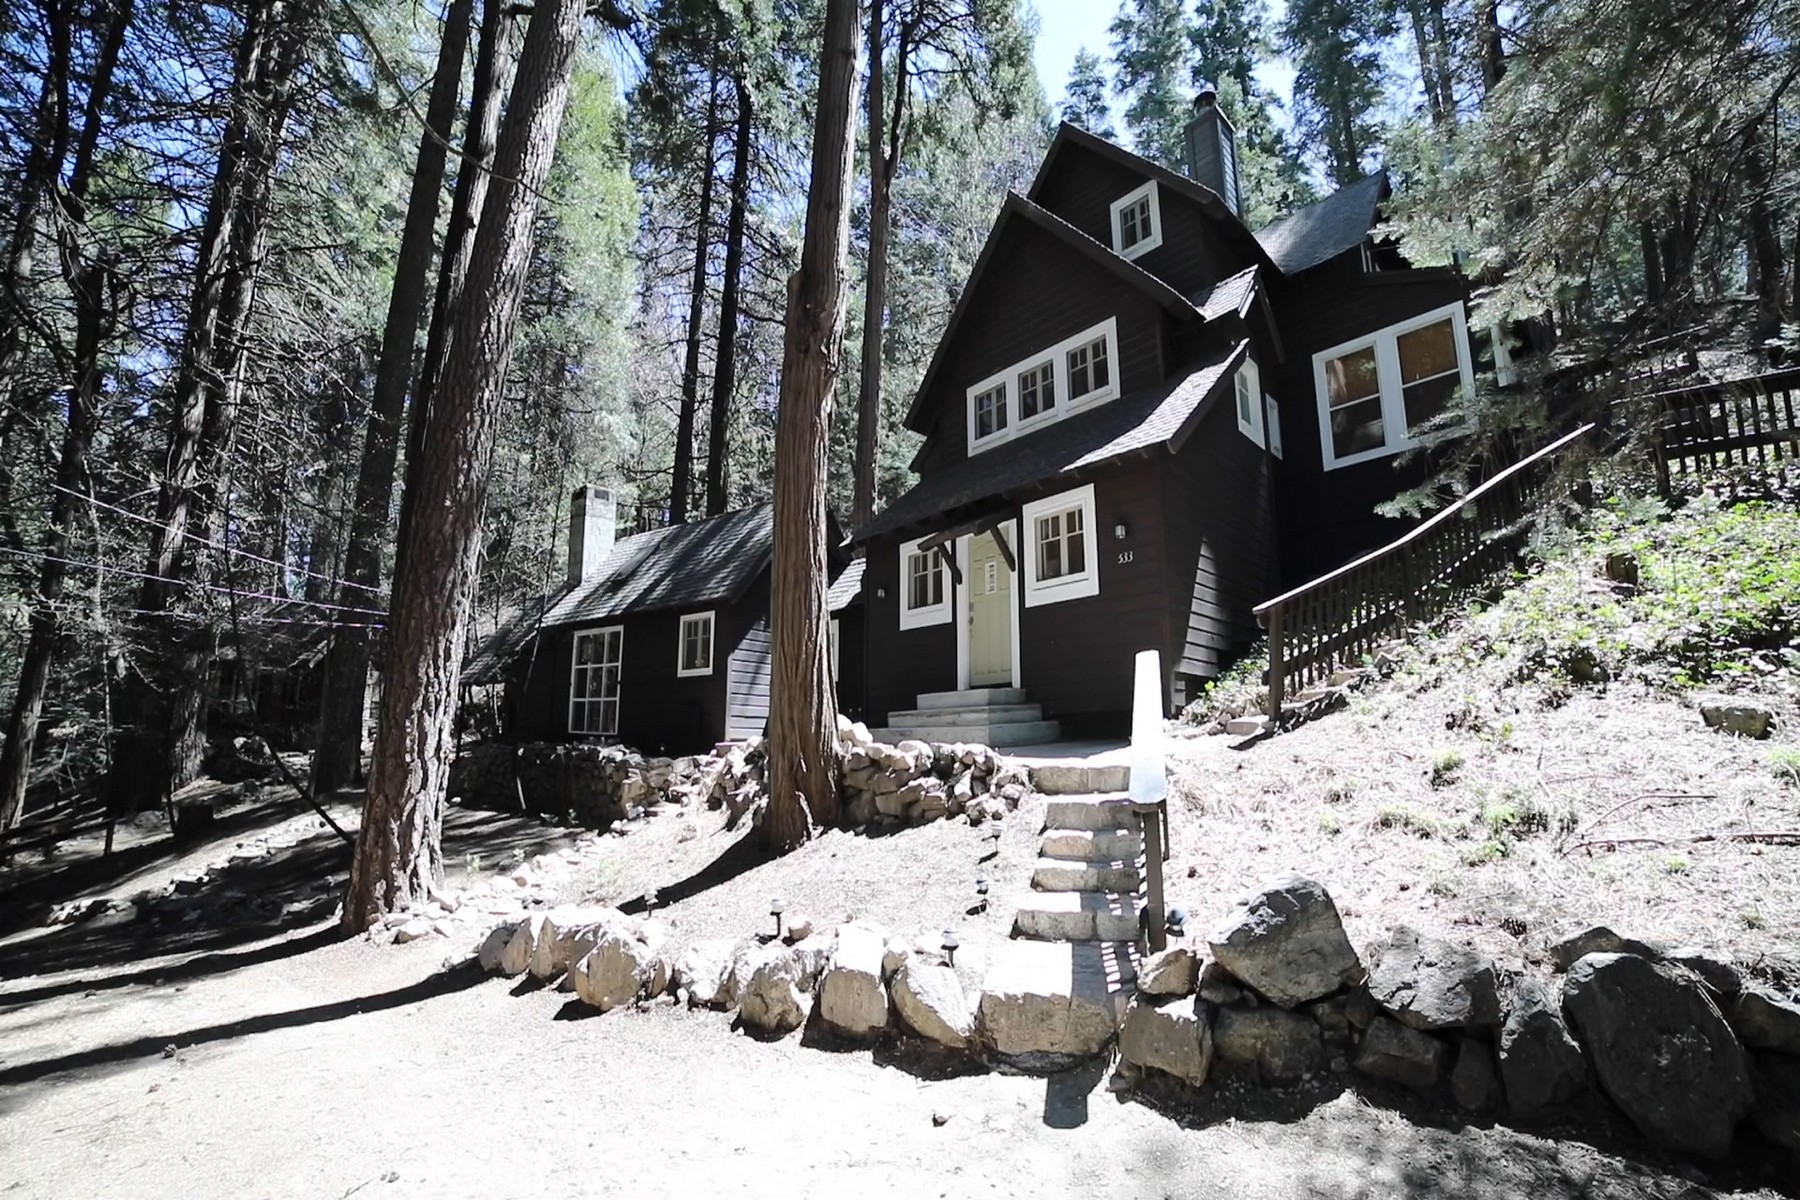 Single Family Homes for Active at 533 Cottage Grove Road, Lake Arrowhead, California 92352 533 Cottage Grove Road Lake Arrowhead, California 92352 United States